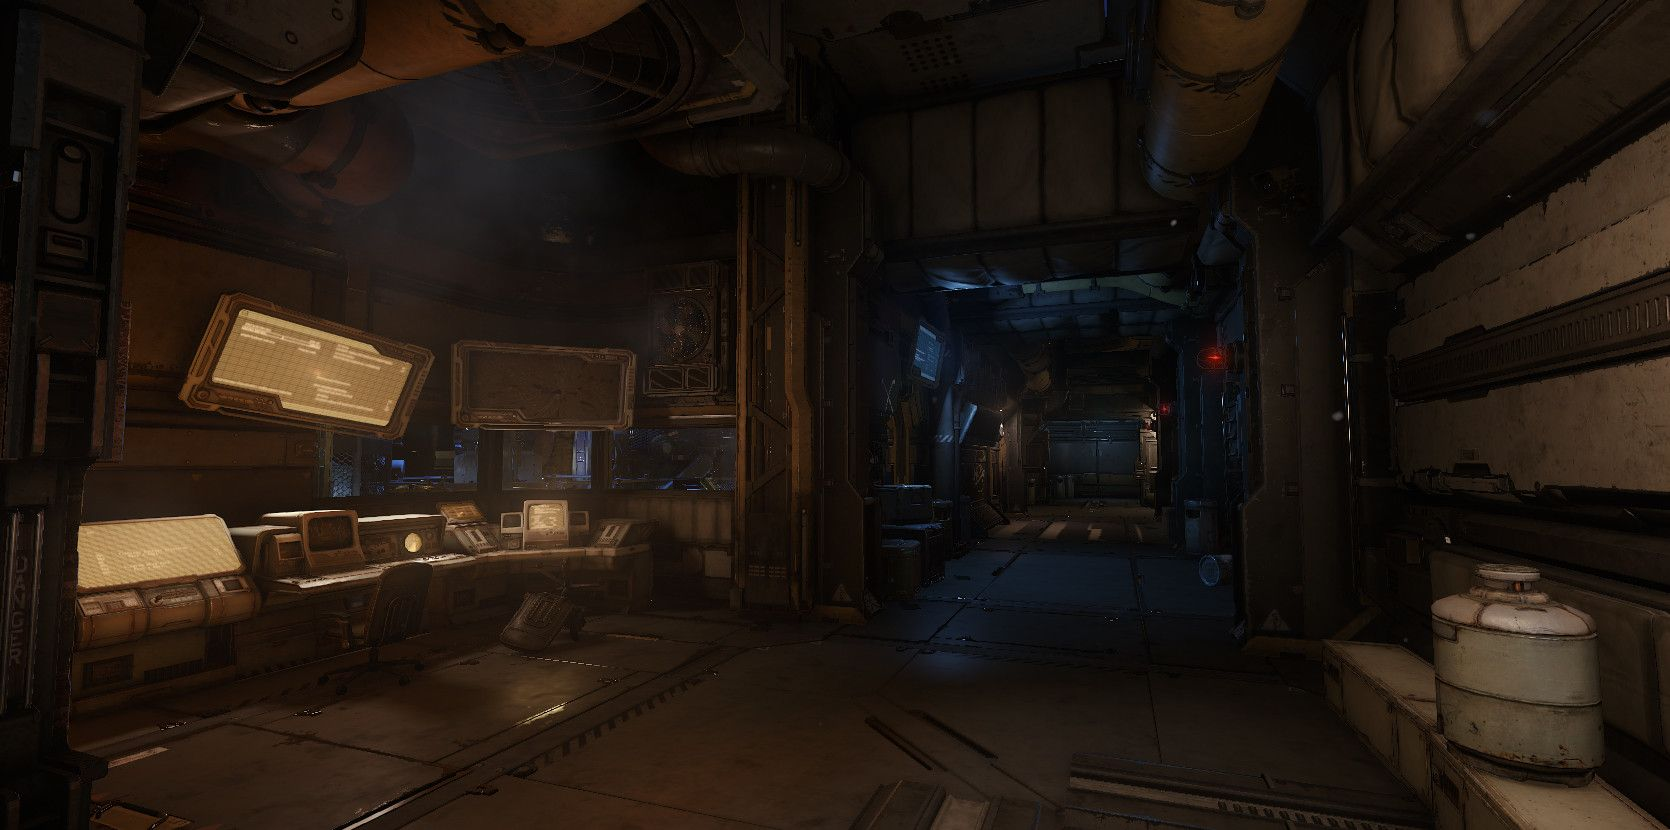 ArtStation - Star Citizen - Gold Horizon FPS, Thomas Cherry